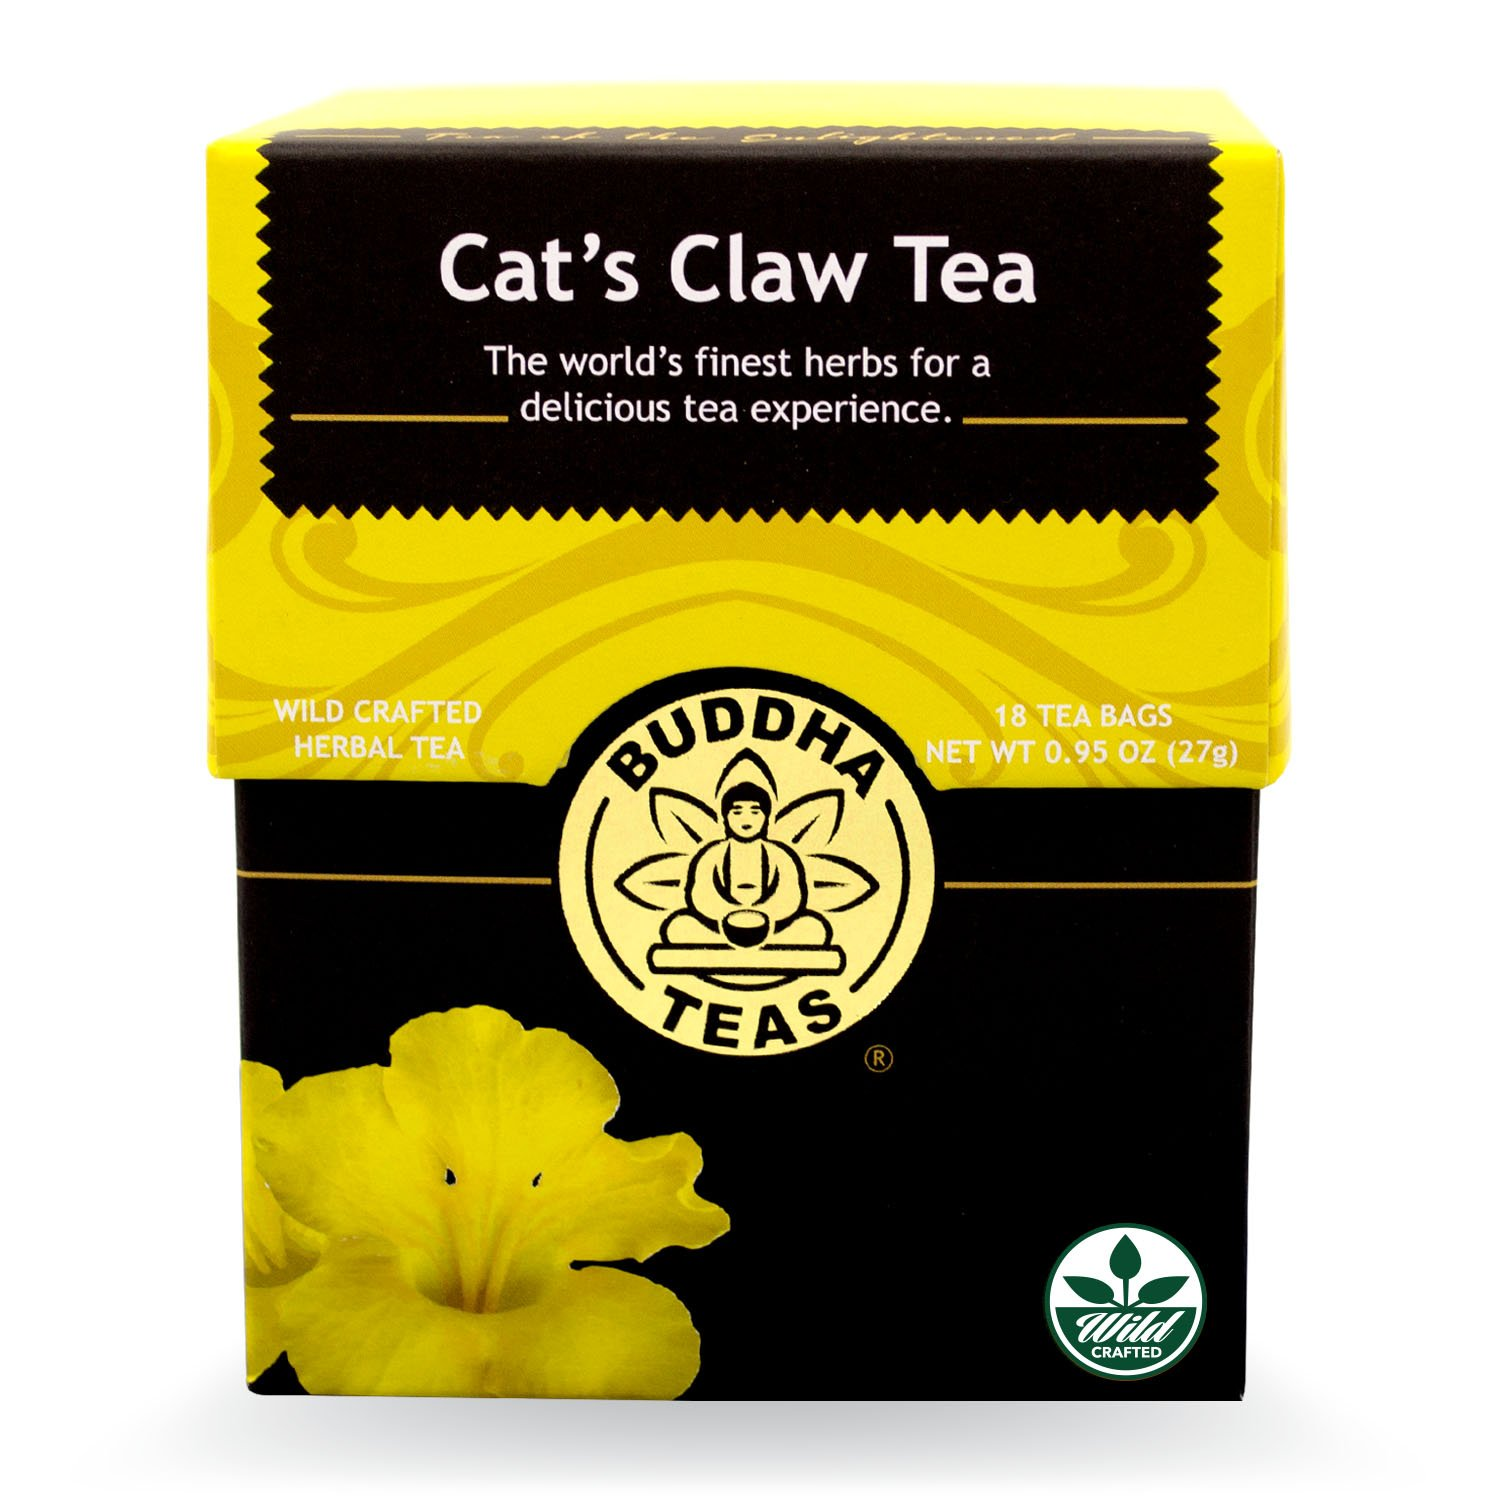 Buddha Teas Cat's Claw Tea, 18 Count (Pack of 6)